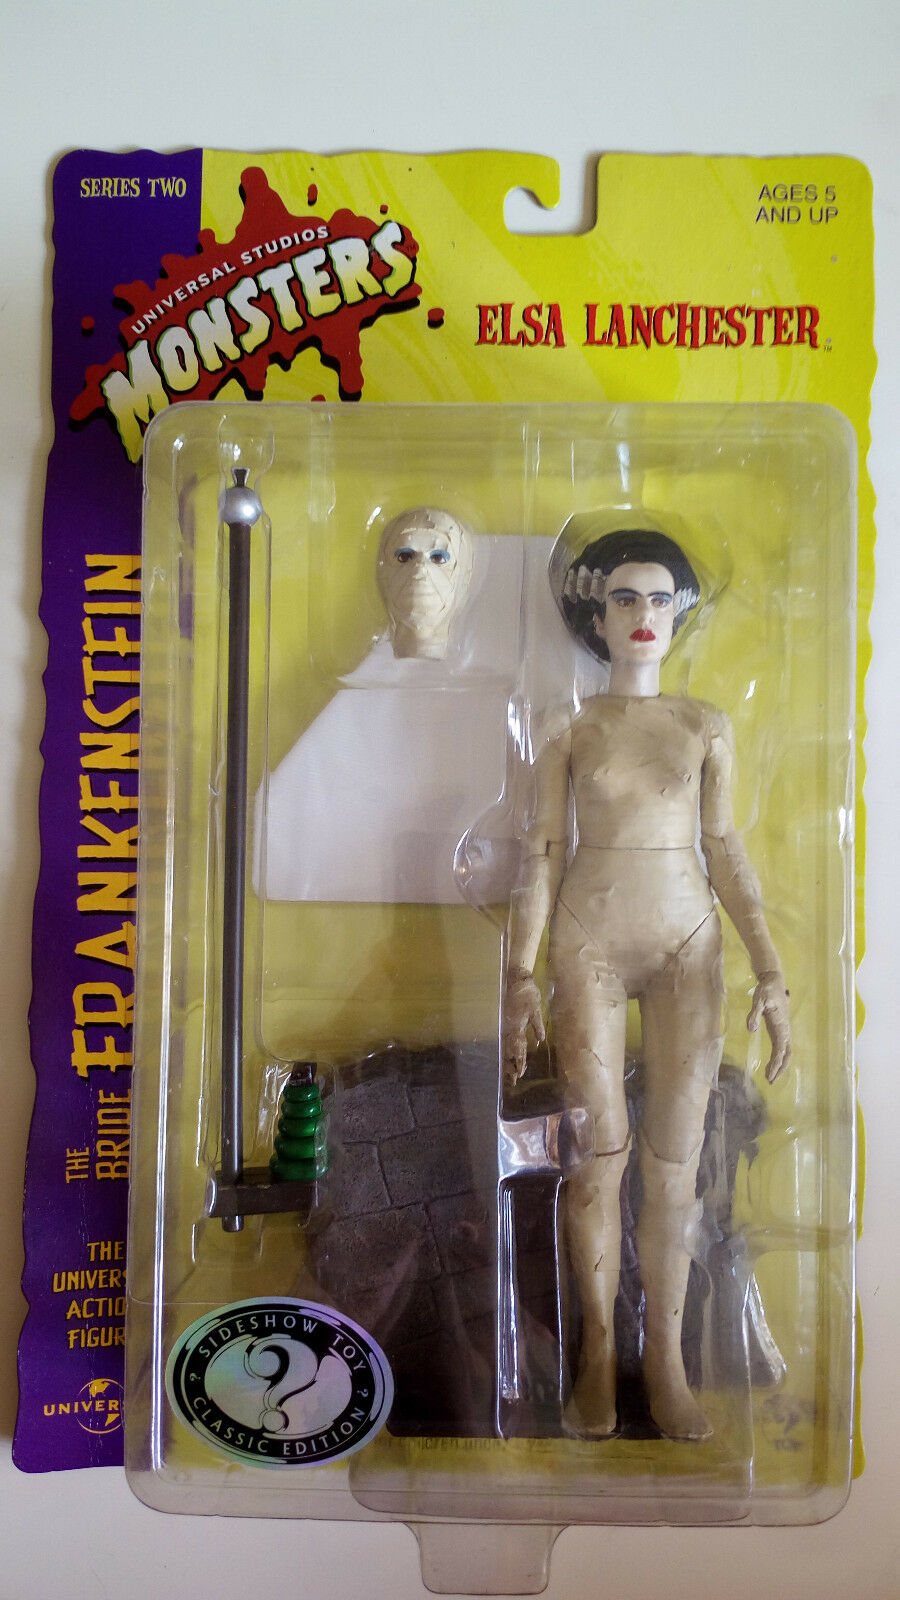 The Bride of Frankenstein Elsa Lanchester di Sideshow TOY  neu & OVP   serie Two